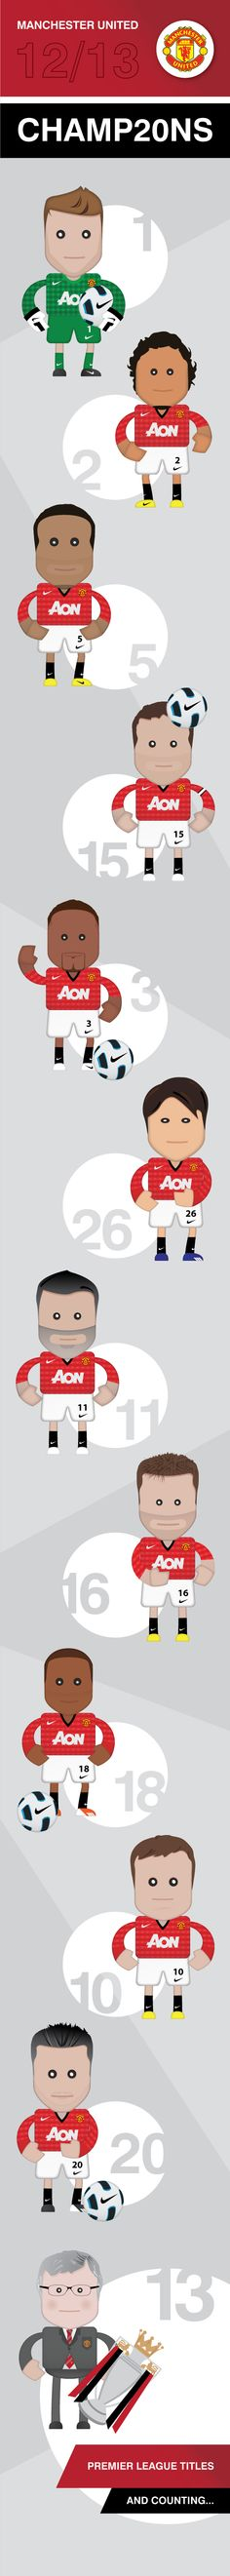 Open Water Pin of the Week - A graphical illustrated representation of the Manchester United first team in celebration of winning their 20th league title and 13th Premier League. #ManUtd #Illustration #Design